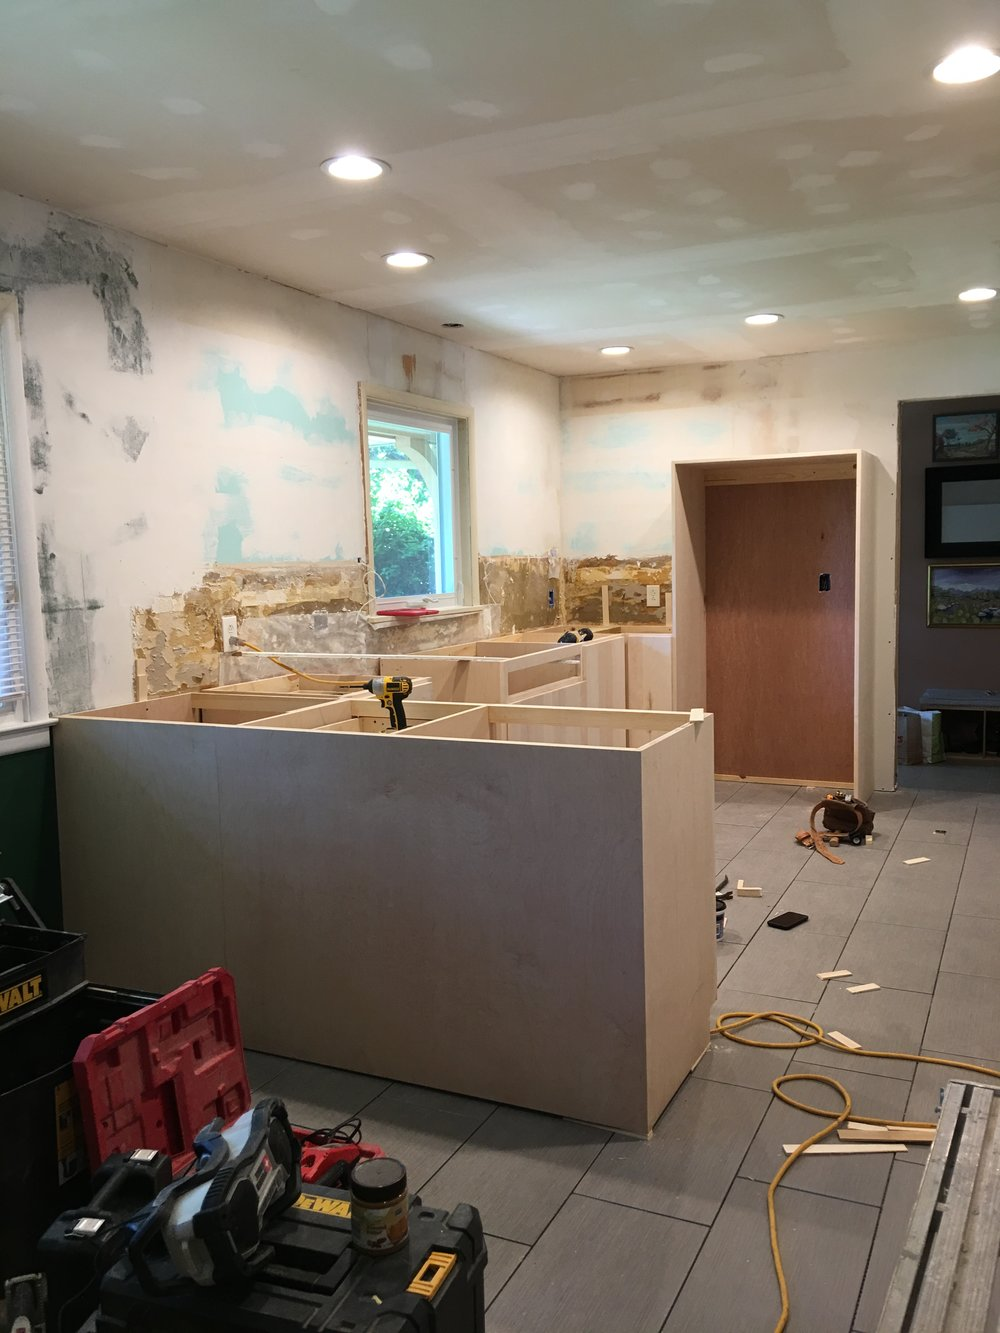 Cabinet installation day in May with Micah of  MJM Construction  was another big highlight for us. It really made the new kitchen feel real!